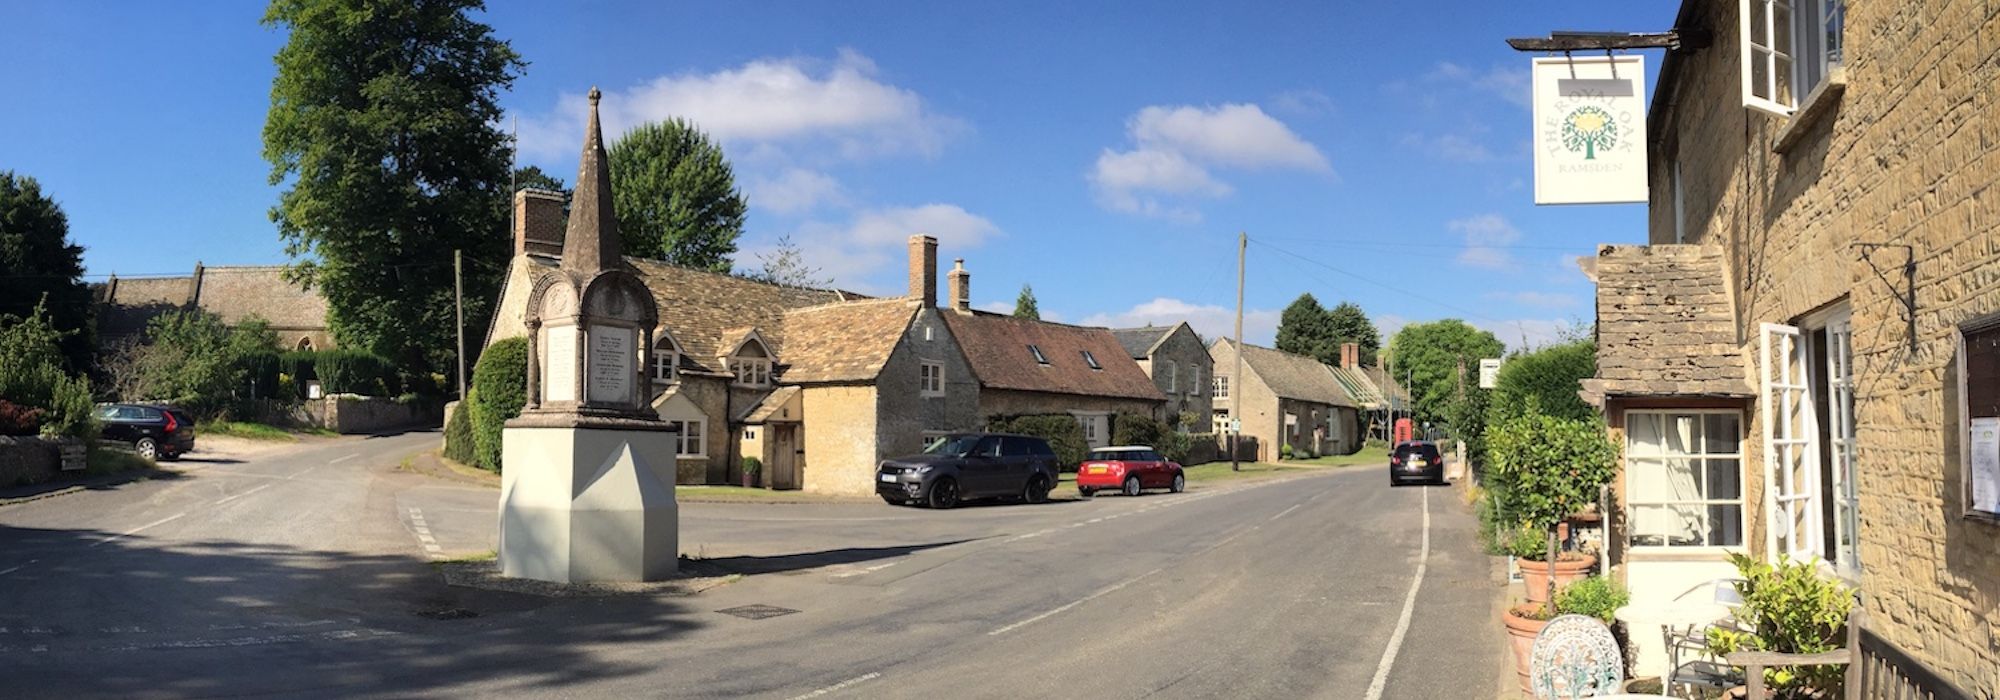 A beautiful village in the heart of the Oxfordshire Cotswolds